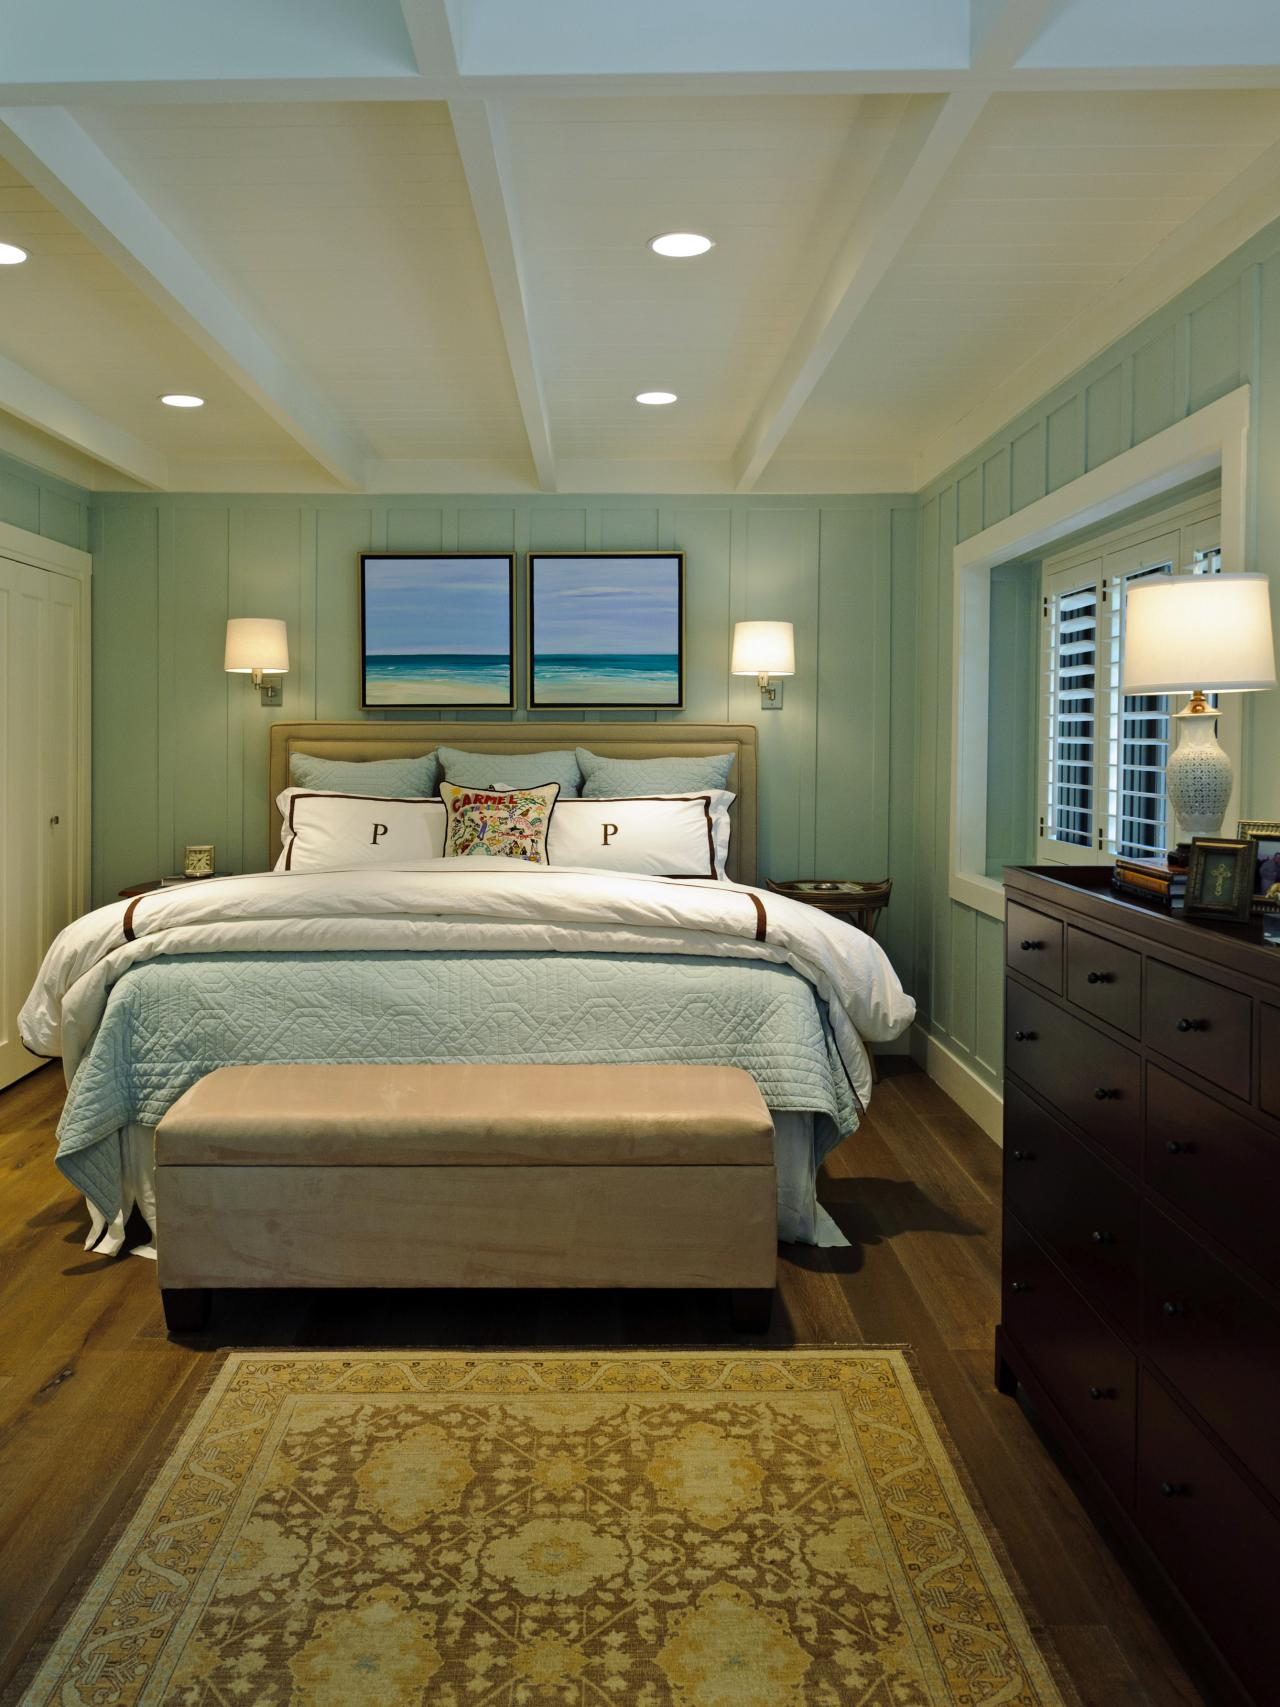 16 beach style bedroom decorating ideas for Bedroom style ideas